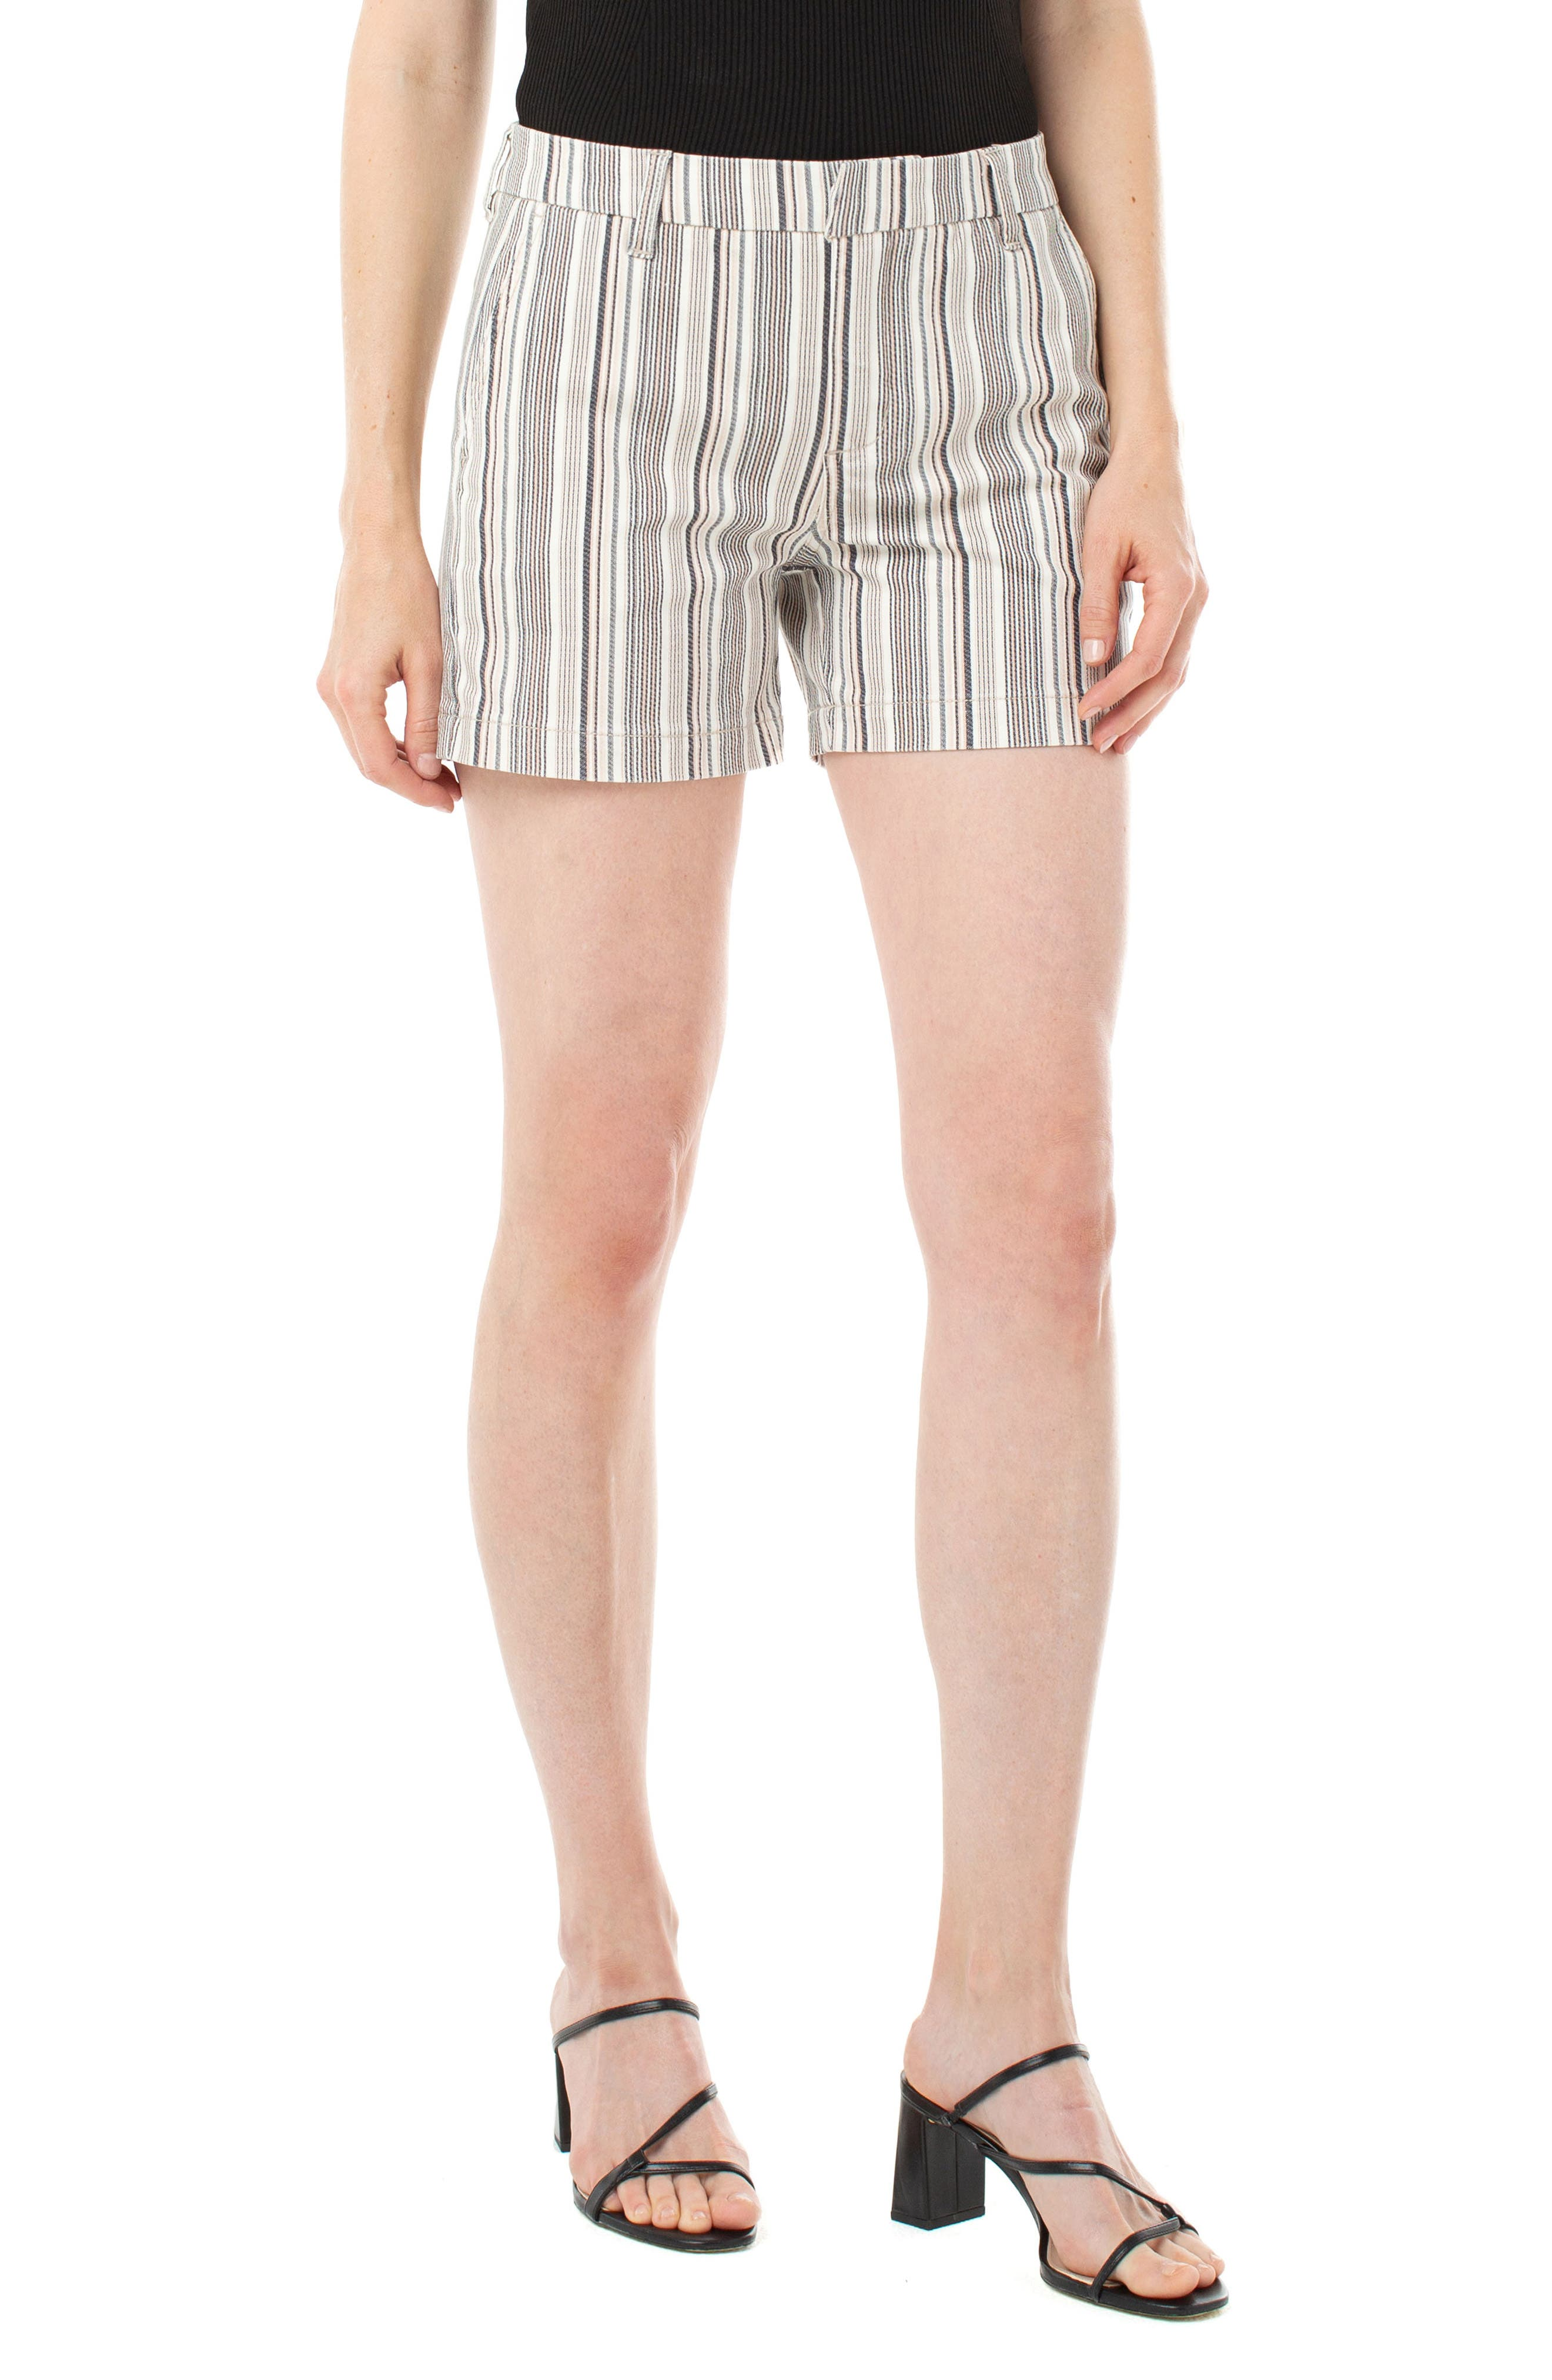 Add some fancy to your fun looks in these tailored trouser shorts you\\\'ll wear throughout the sunny season. Style Name: Liverpool Trouser Shorts. Style Number: 5964879. Available in stores.